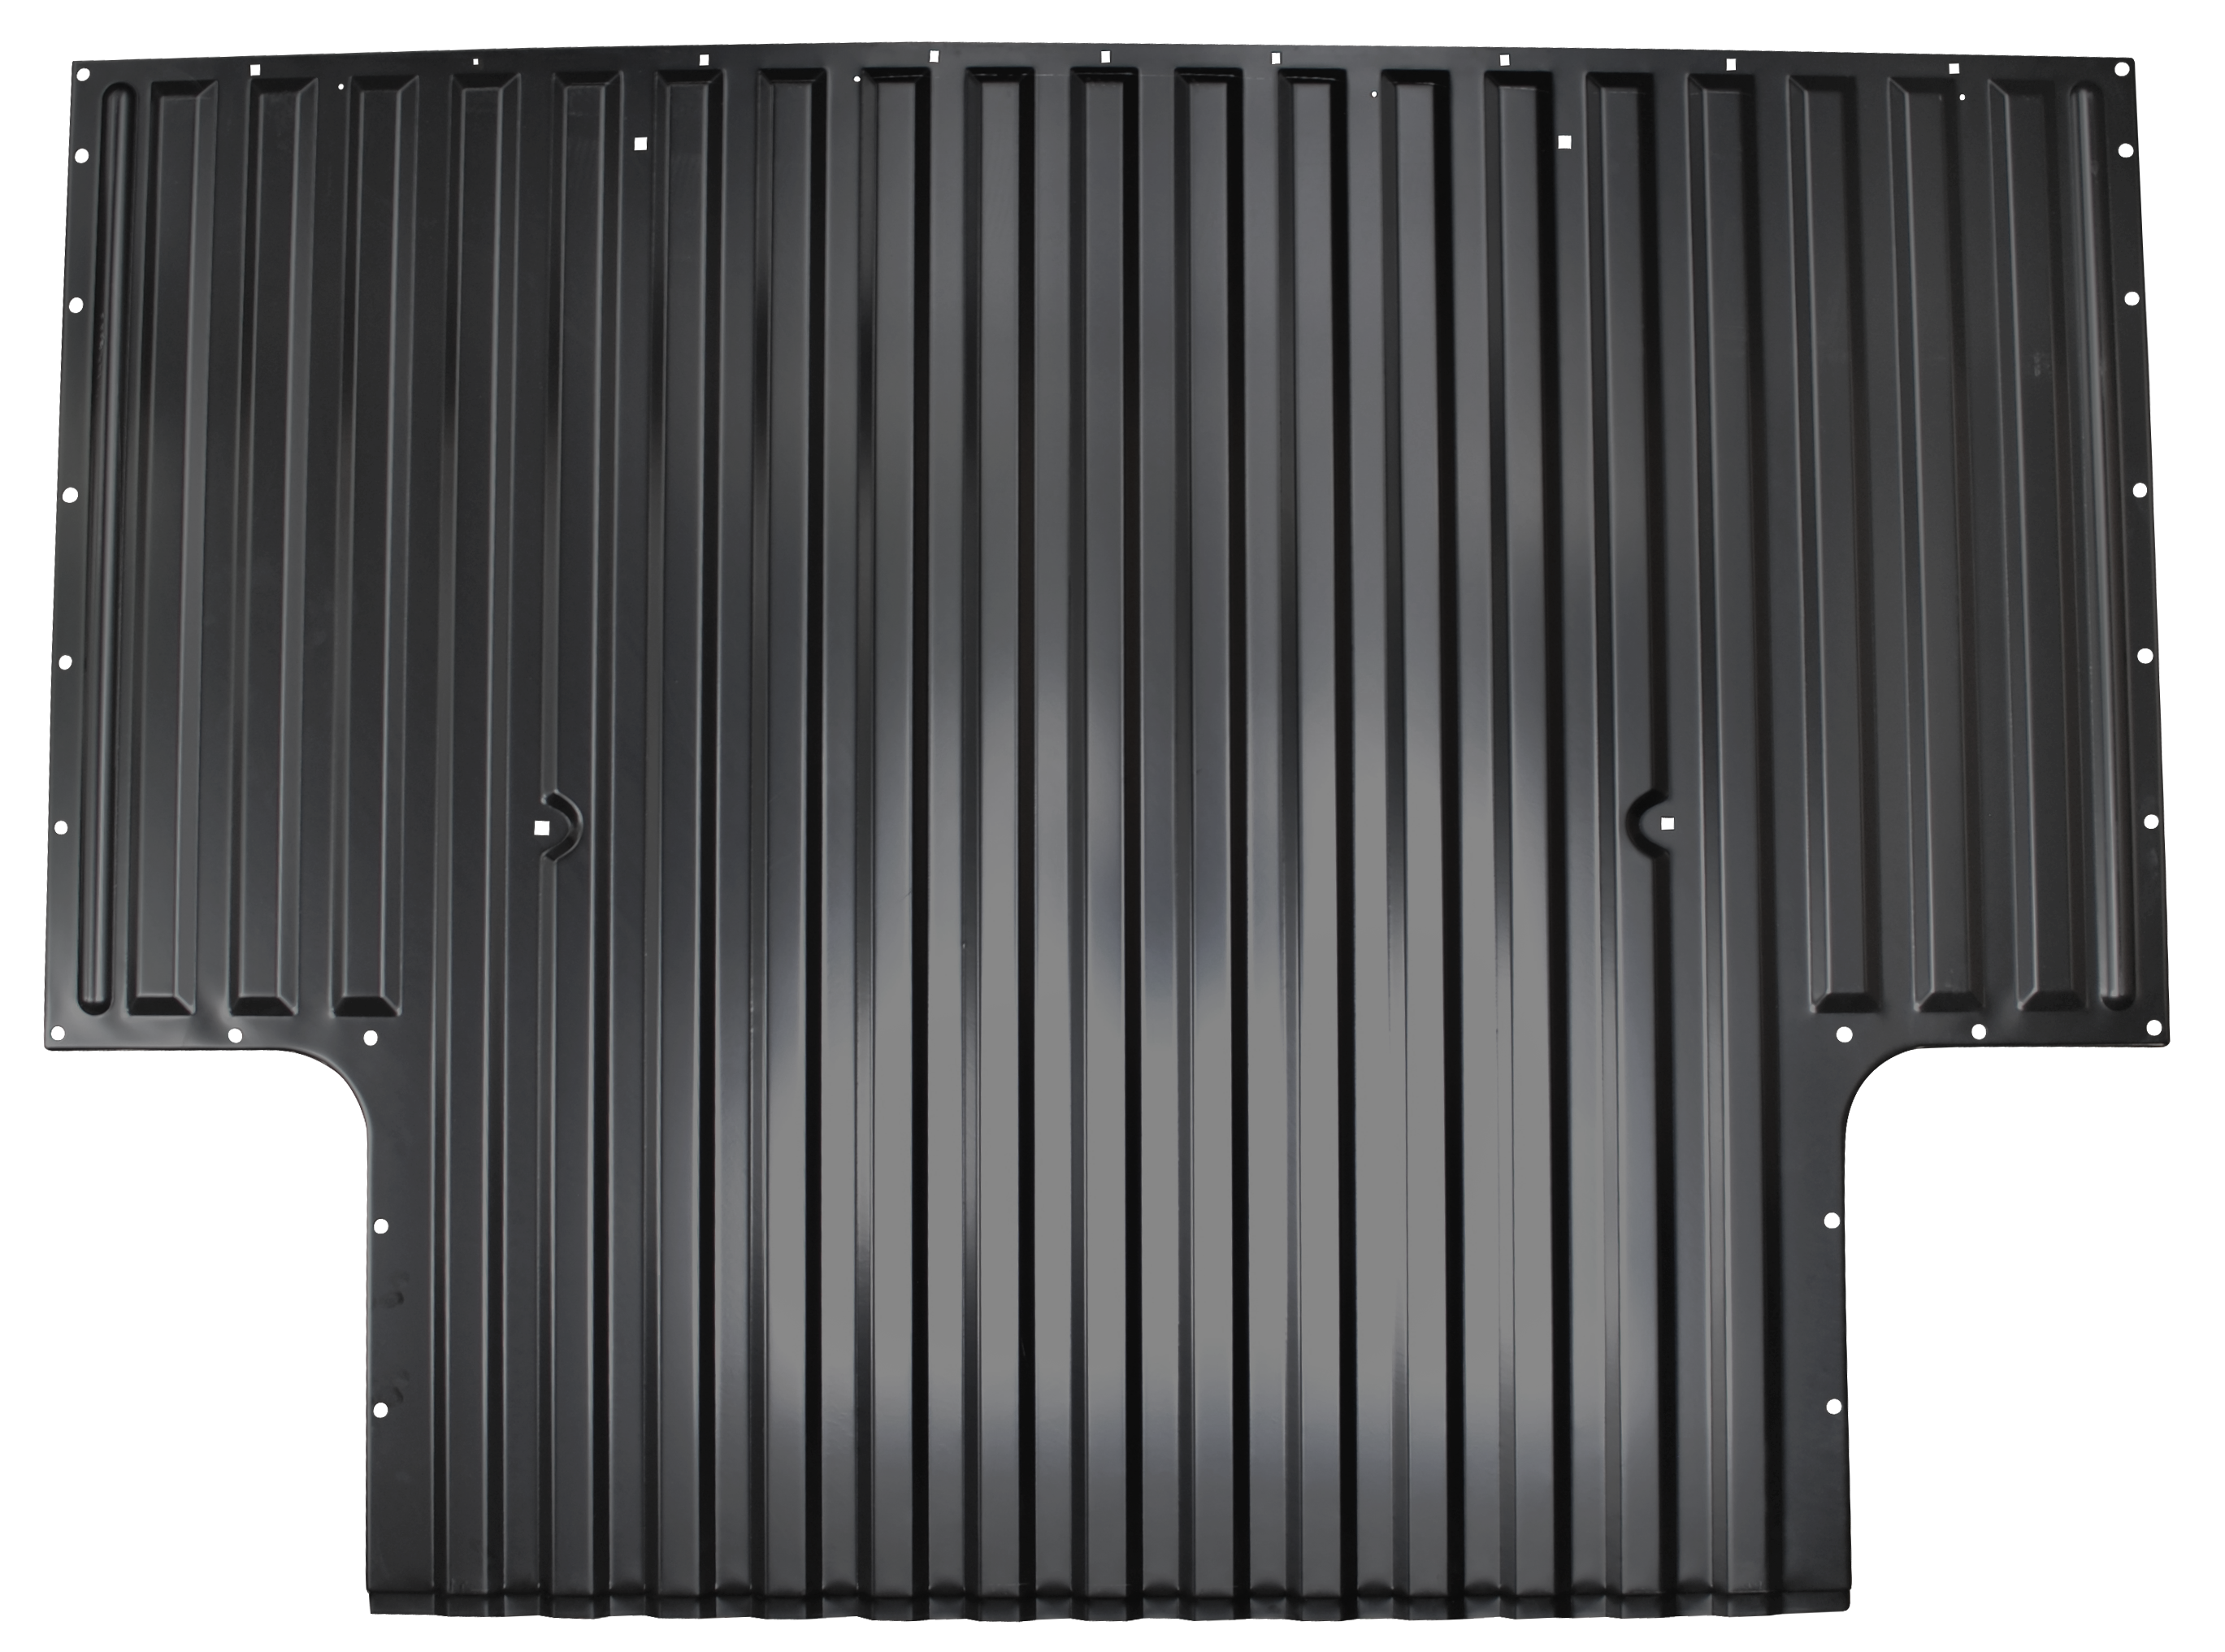 1967-72 C10 front bed floor section 8'